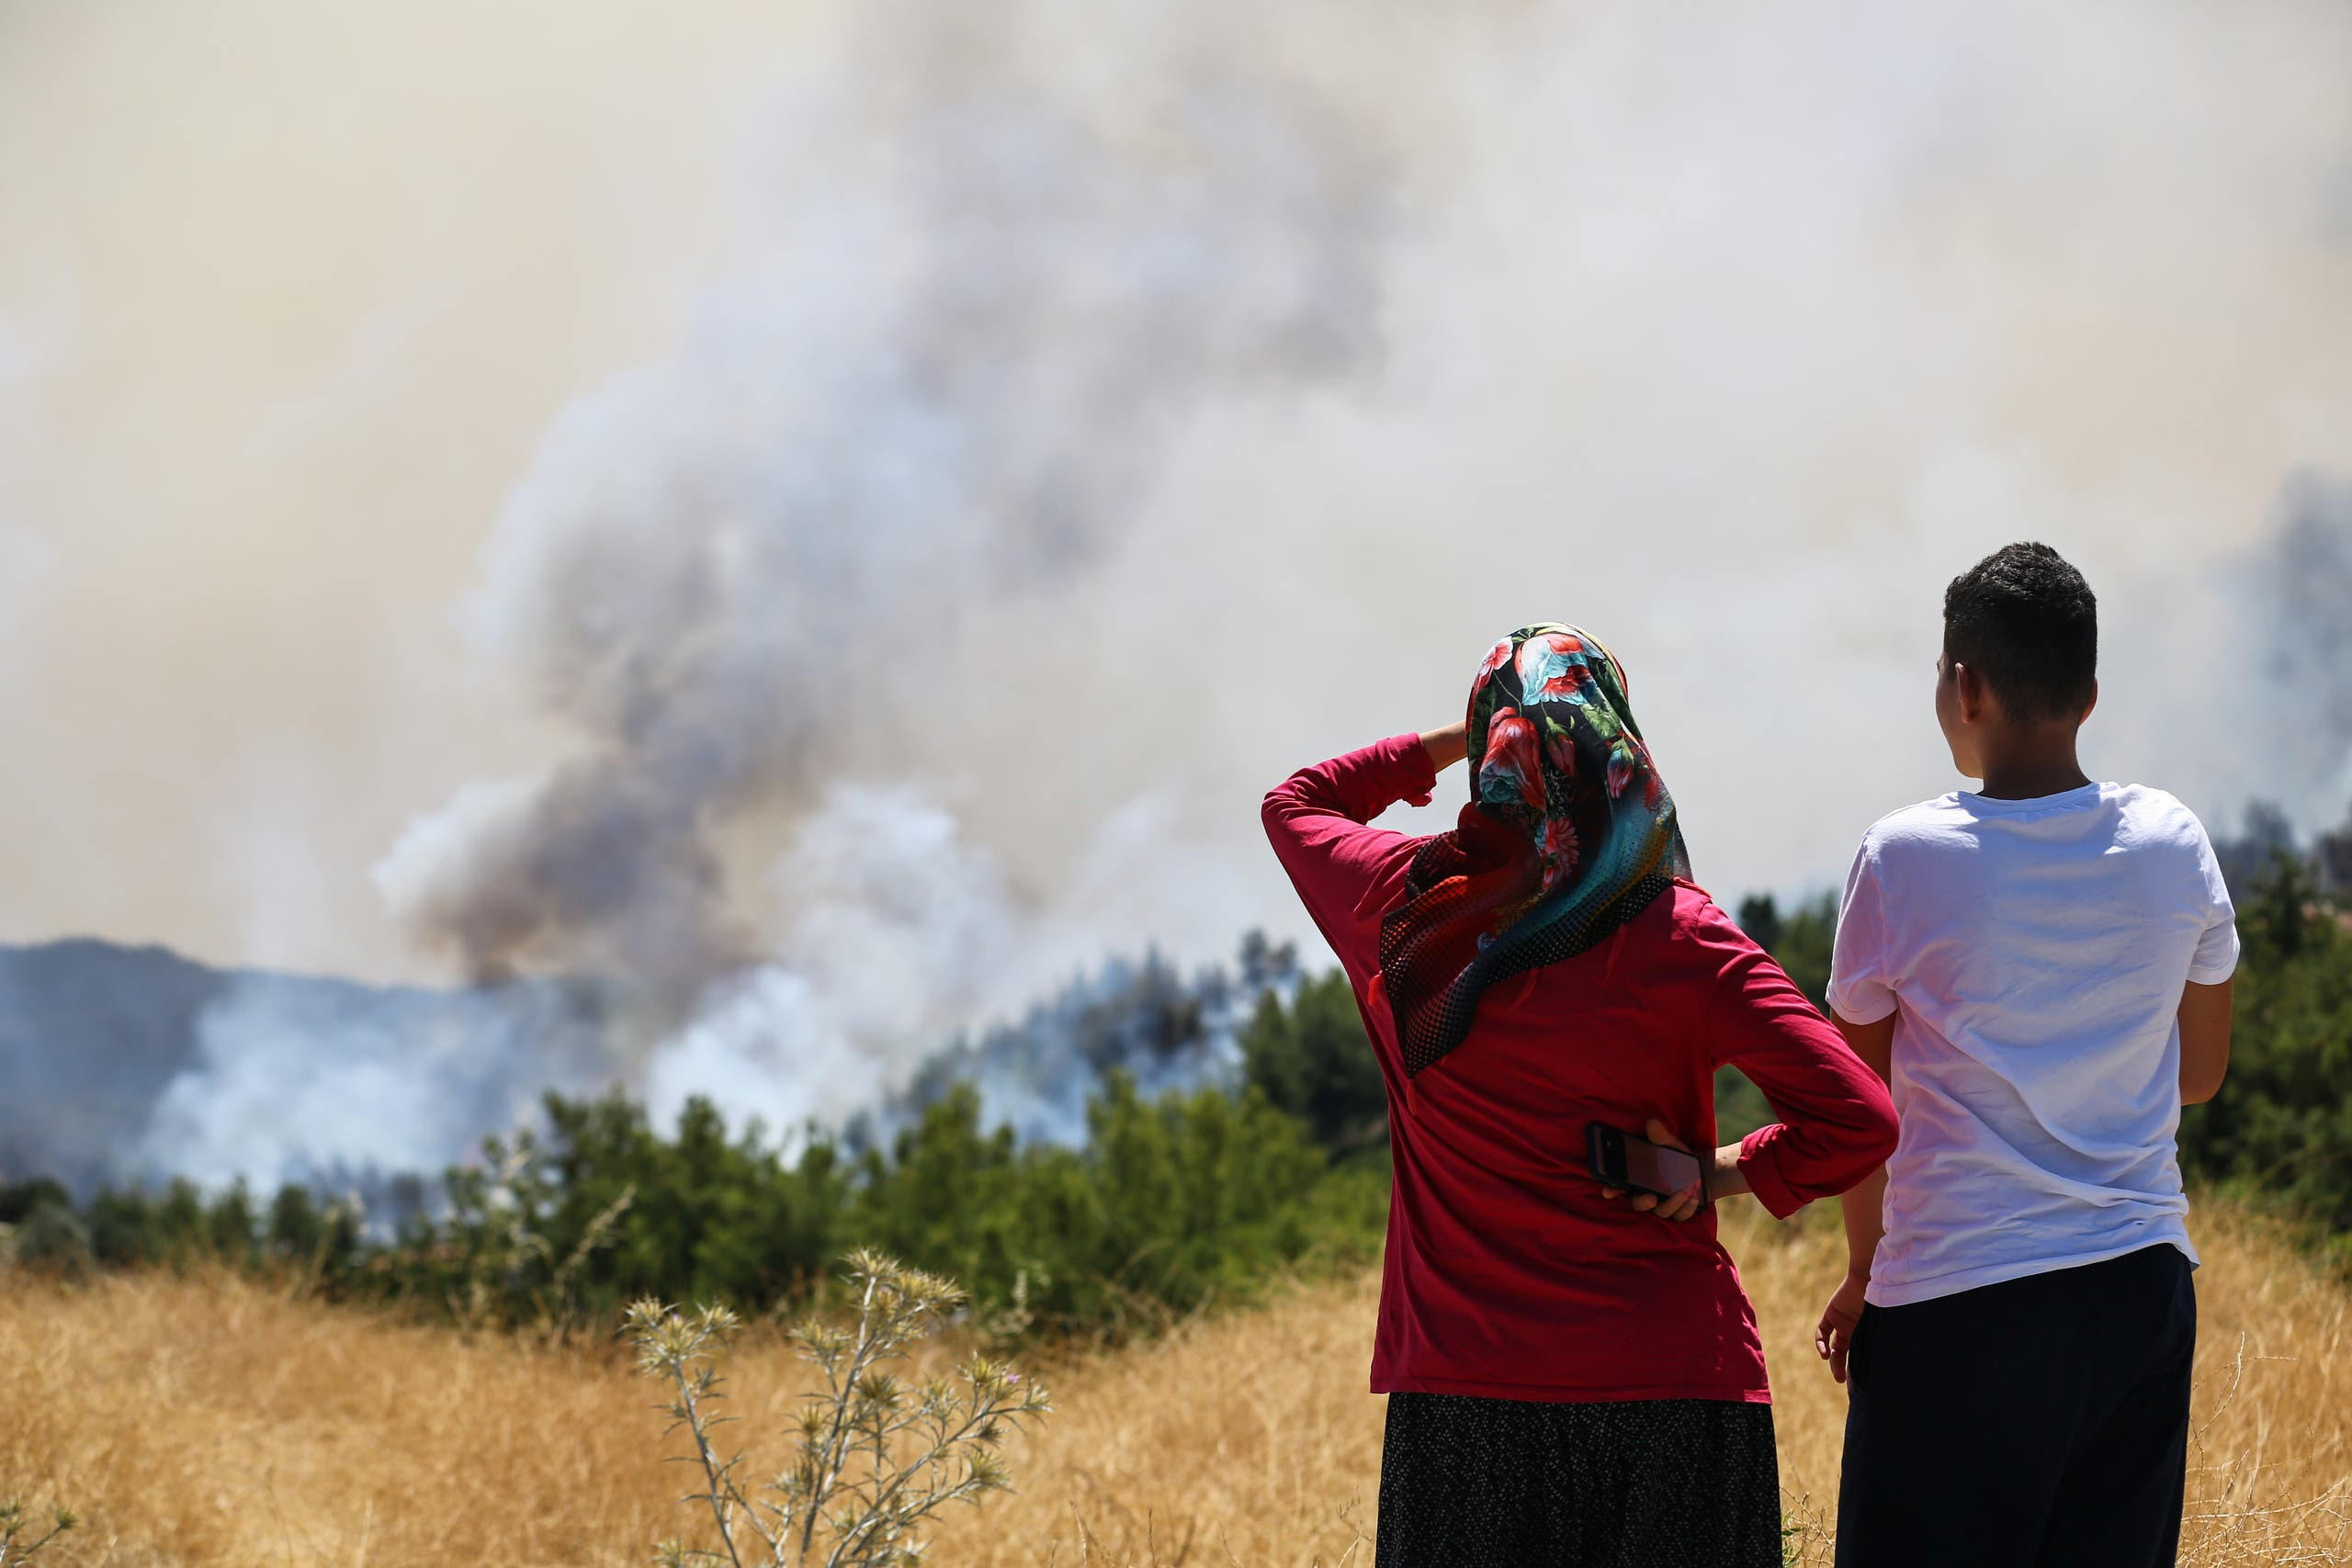 Locals watch a wildfire near the town of Manavgat, east of the resort city of Antalya, Turkey, July 31, 2021. (Reuters)